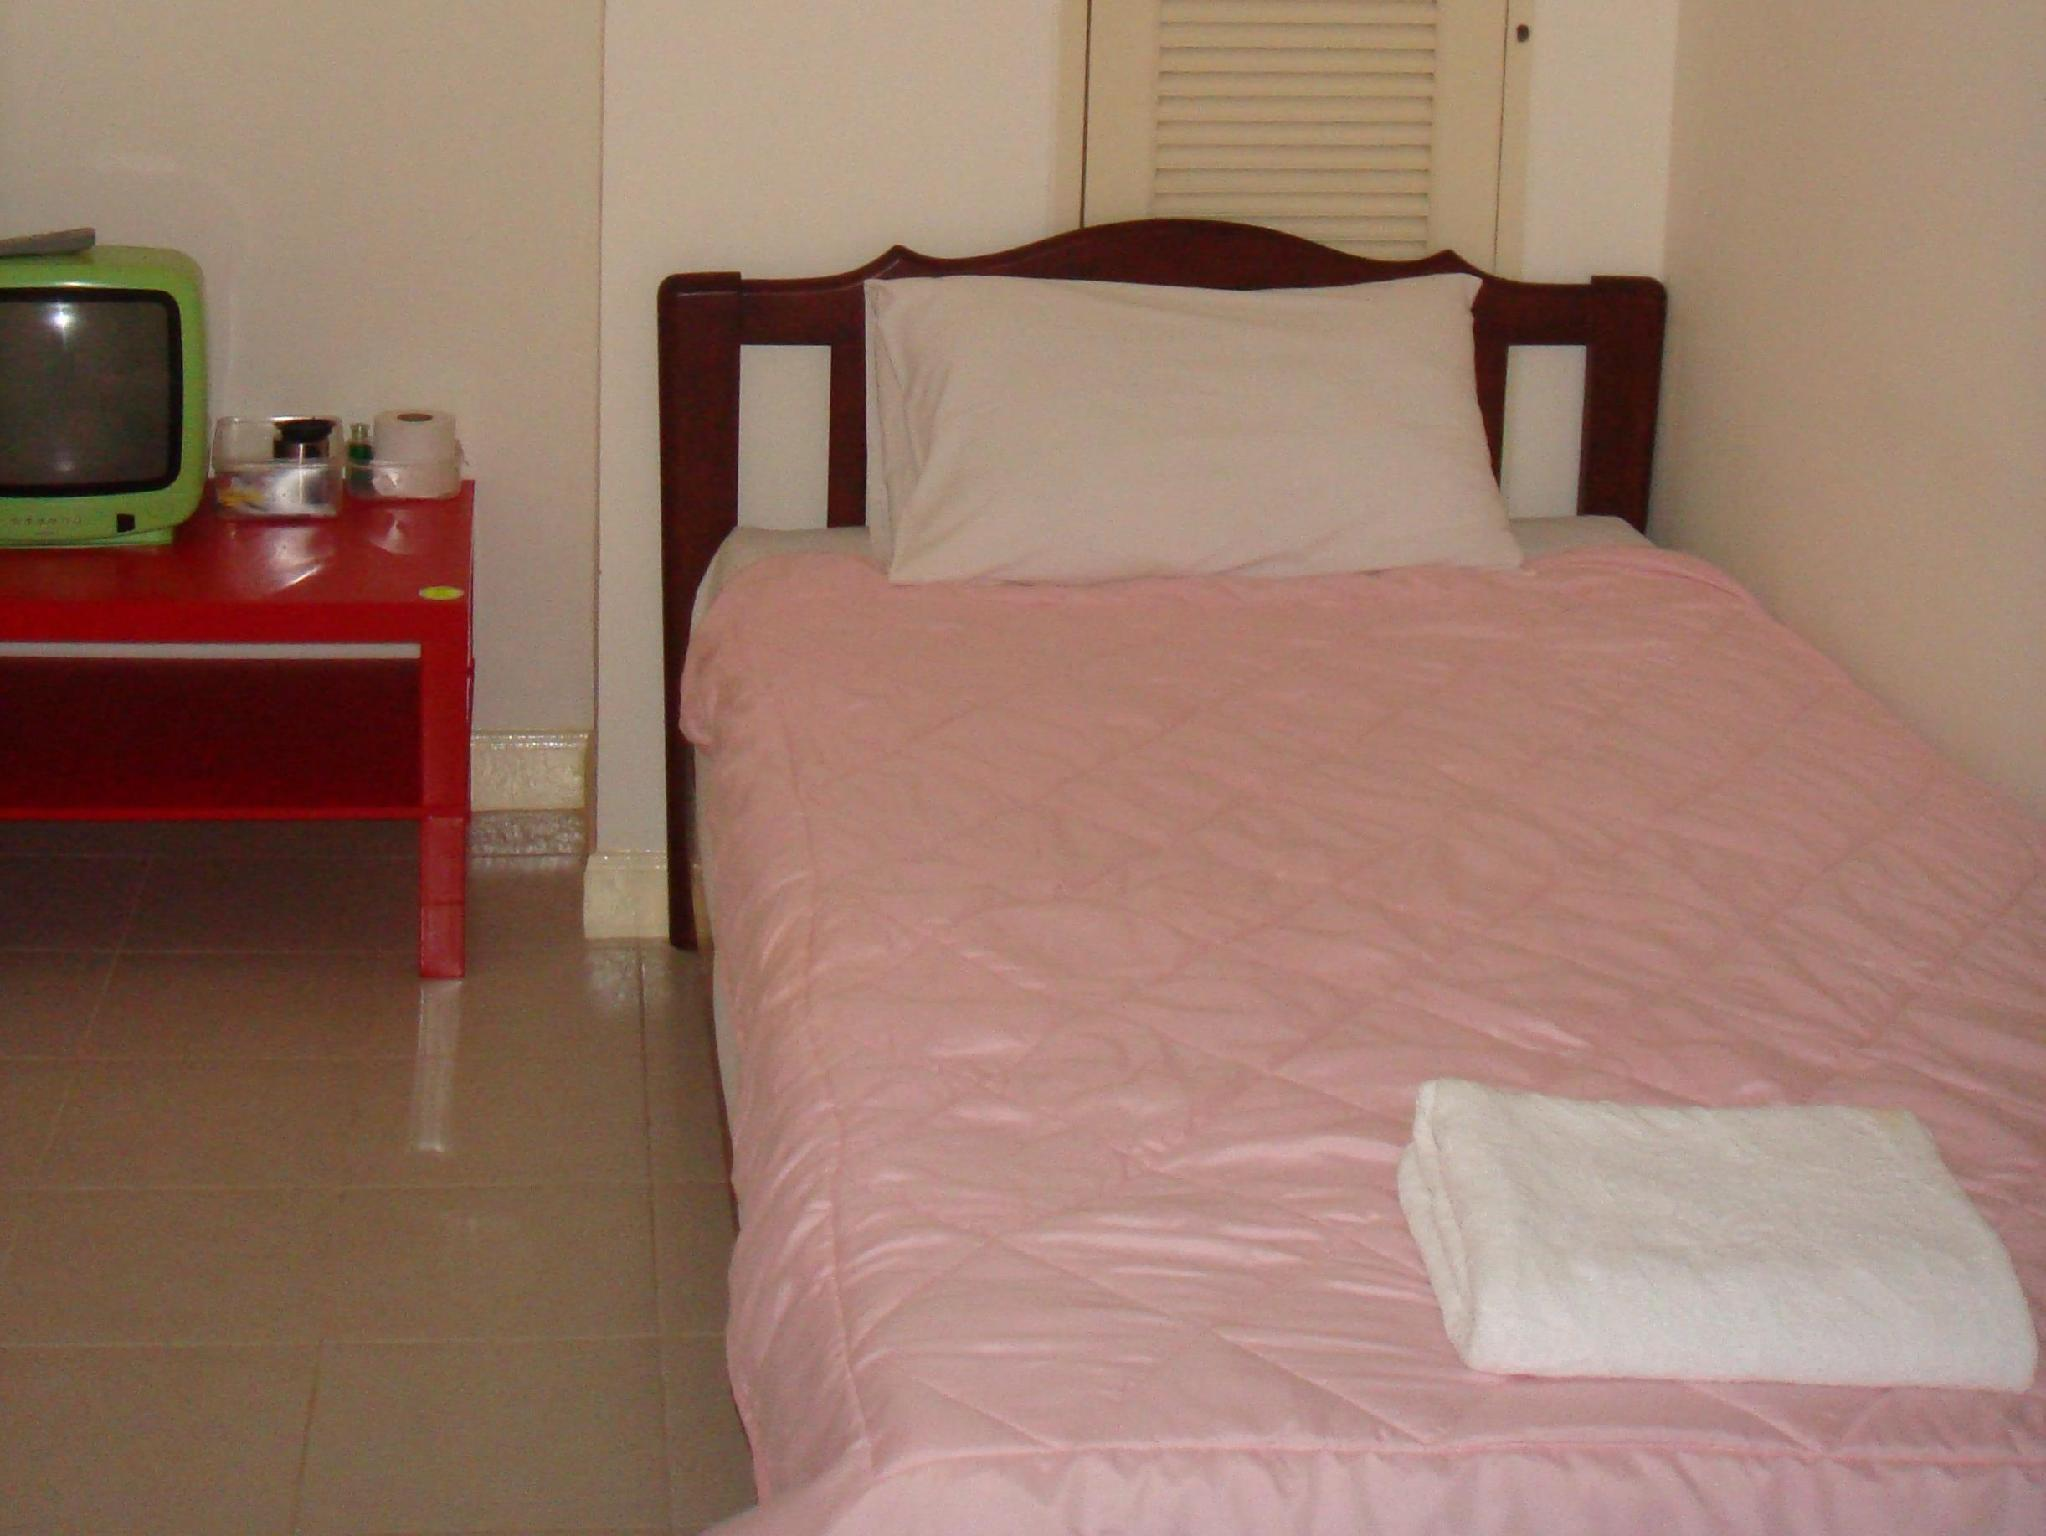 1 persona en dormitori compartit de 4 llits ‒ Només per a dones (1 Person in 4-Bed Dormitory - Female Only)